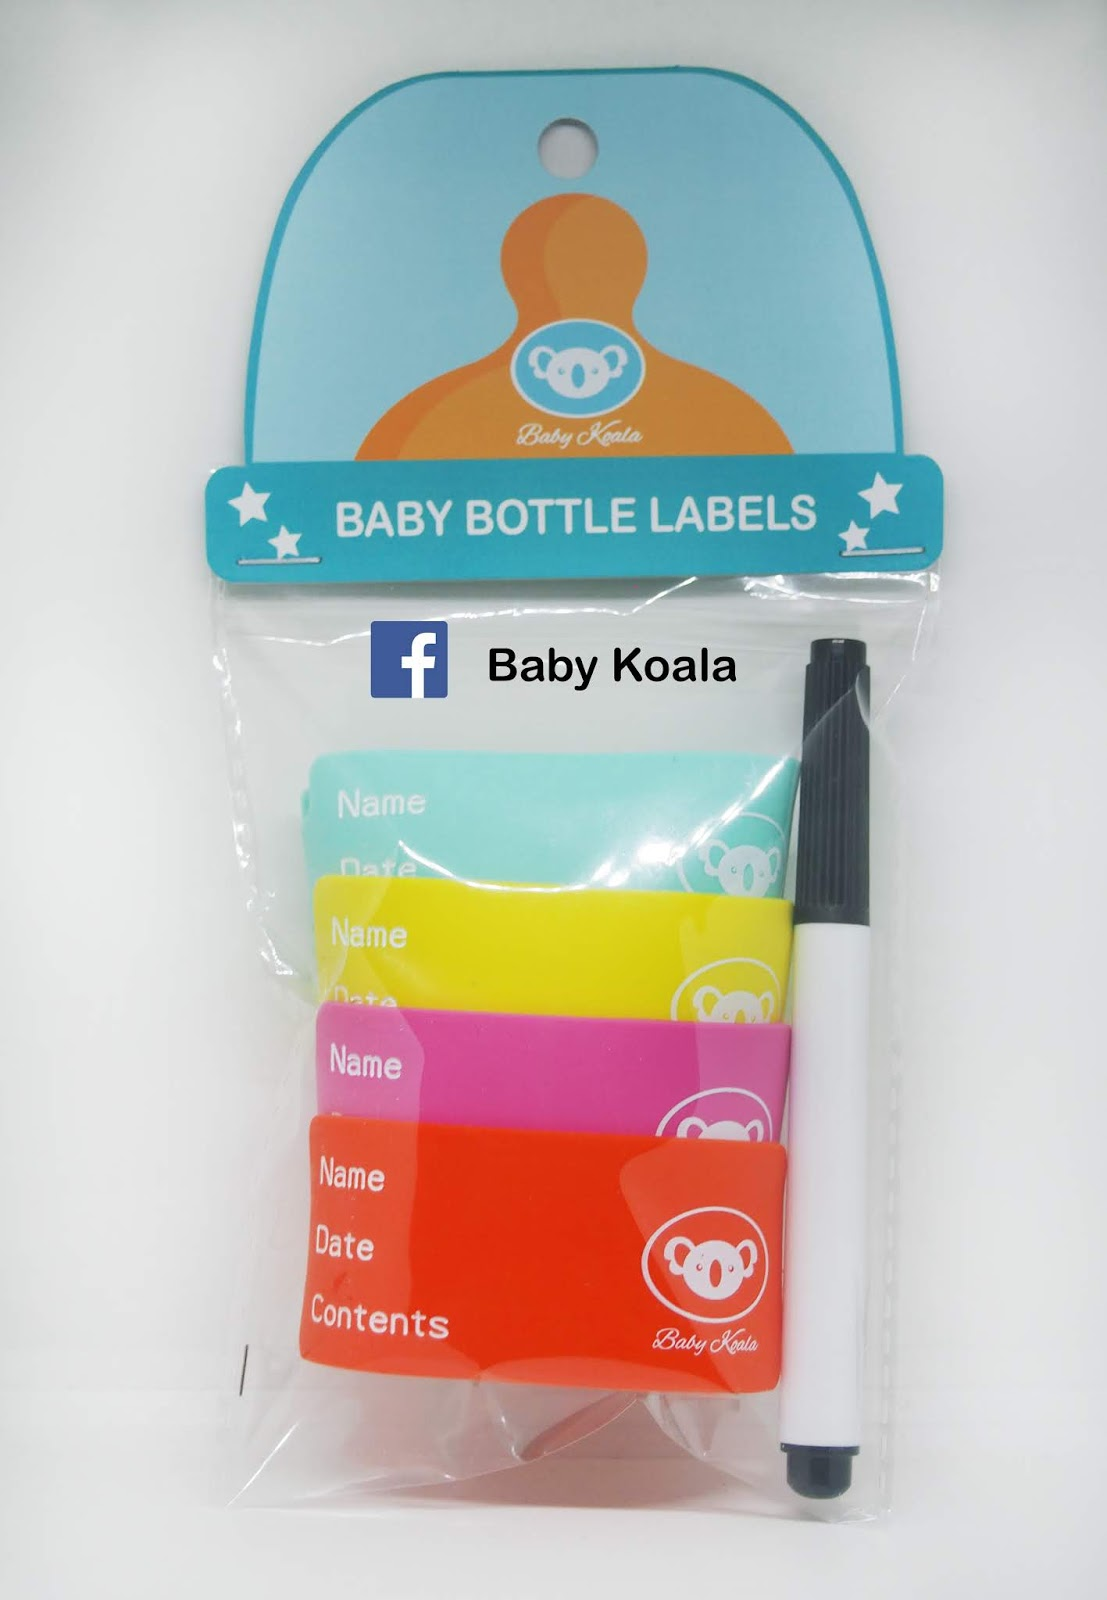 Baby Koala Baby Bottle Label